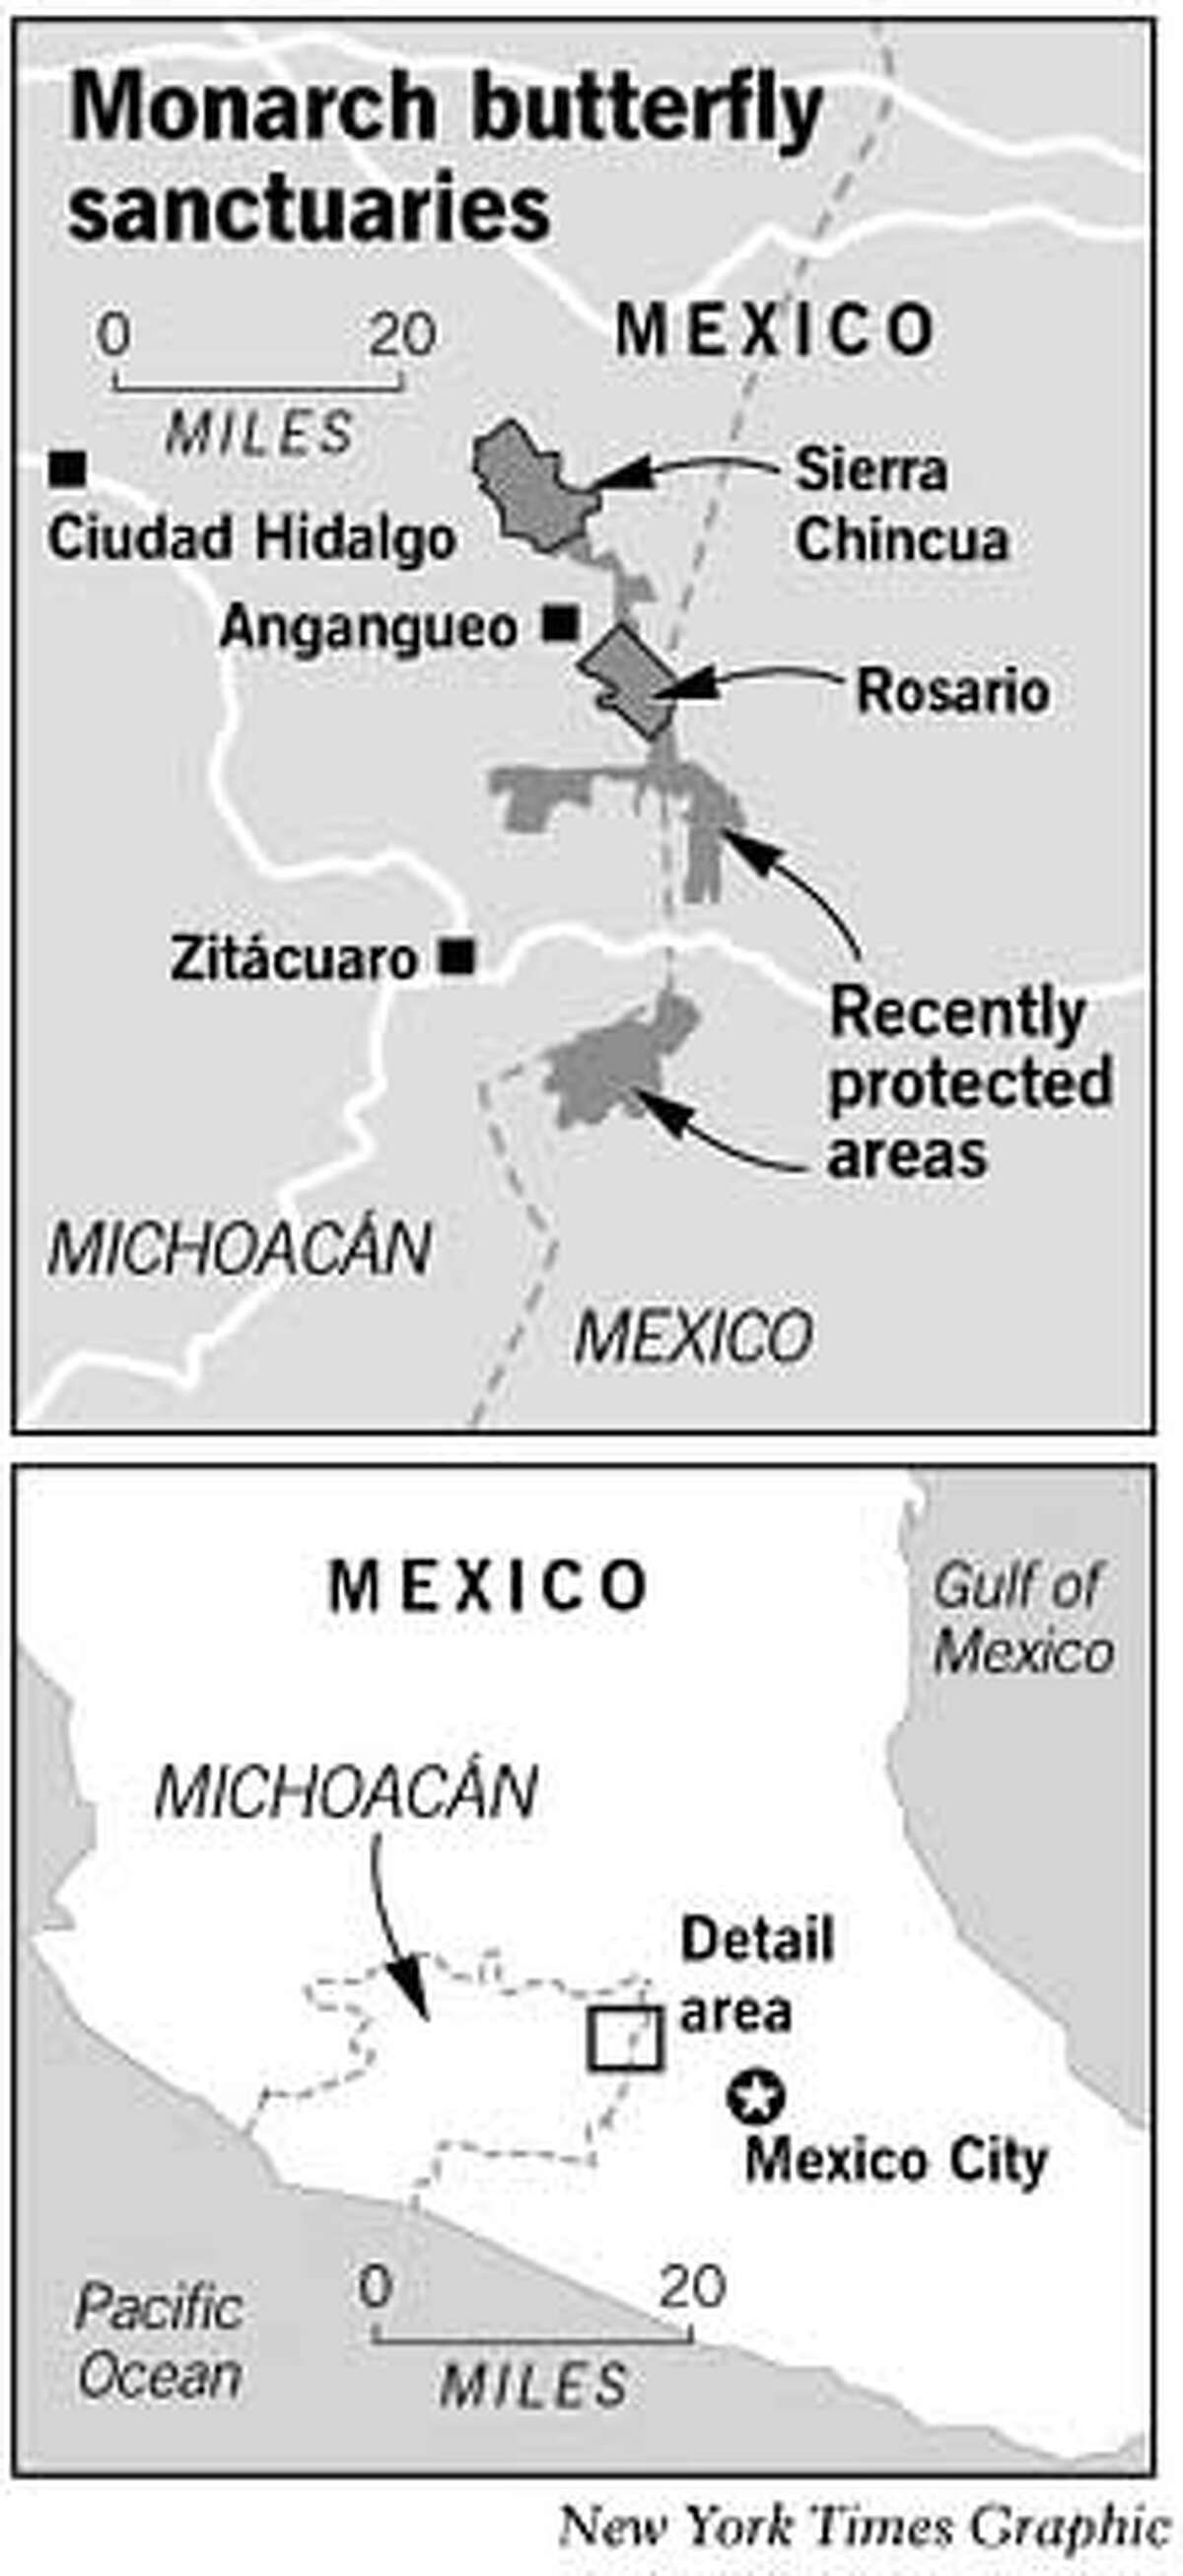 Monarch Butterfly Sanctuaries. New York Times Graphic